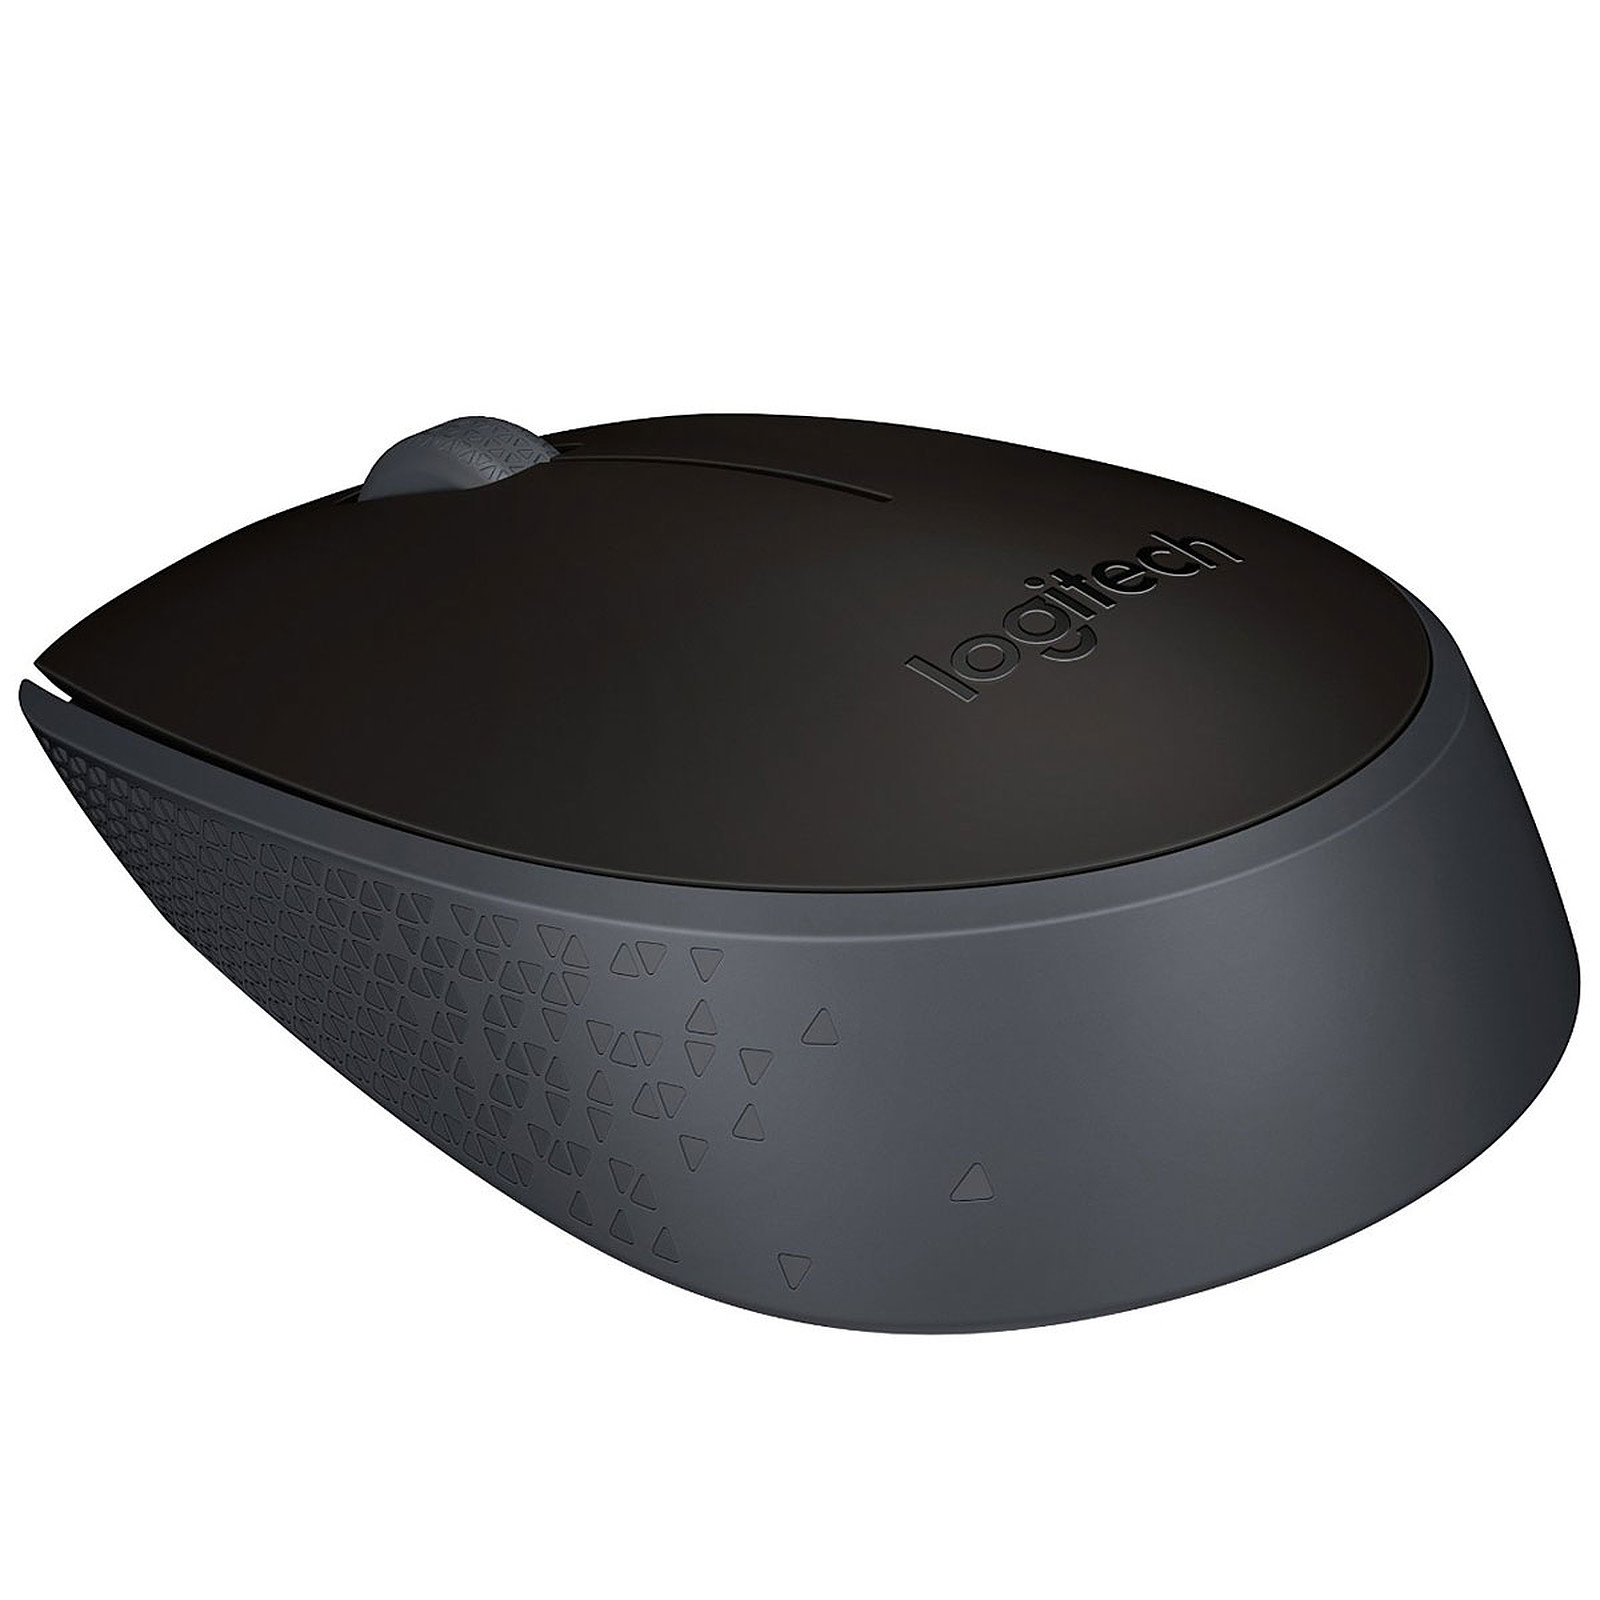 Souris sans fil Logitech wireless mouse optical M171, informatique ile de la réunion 974